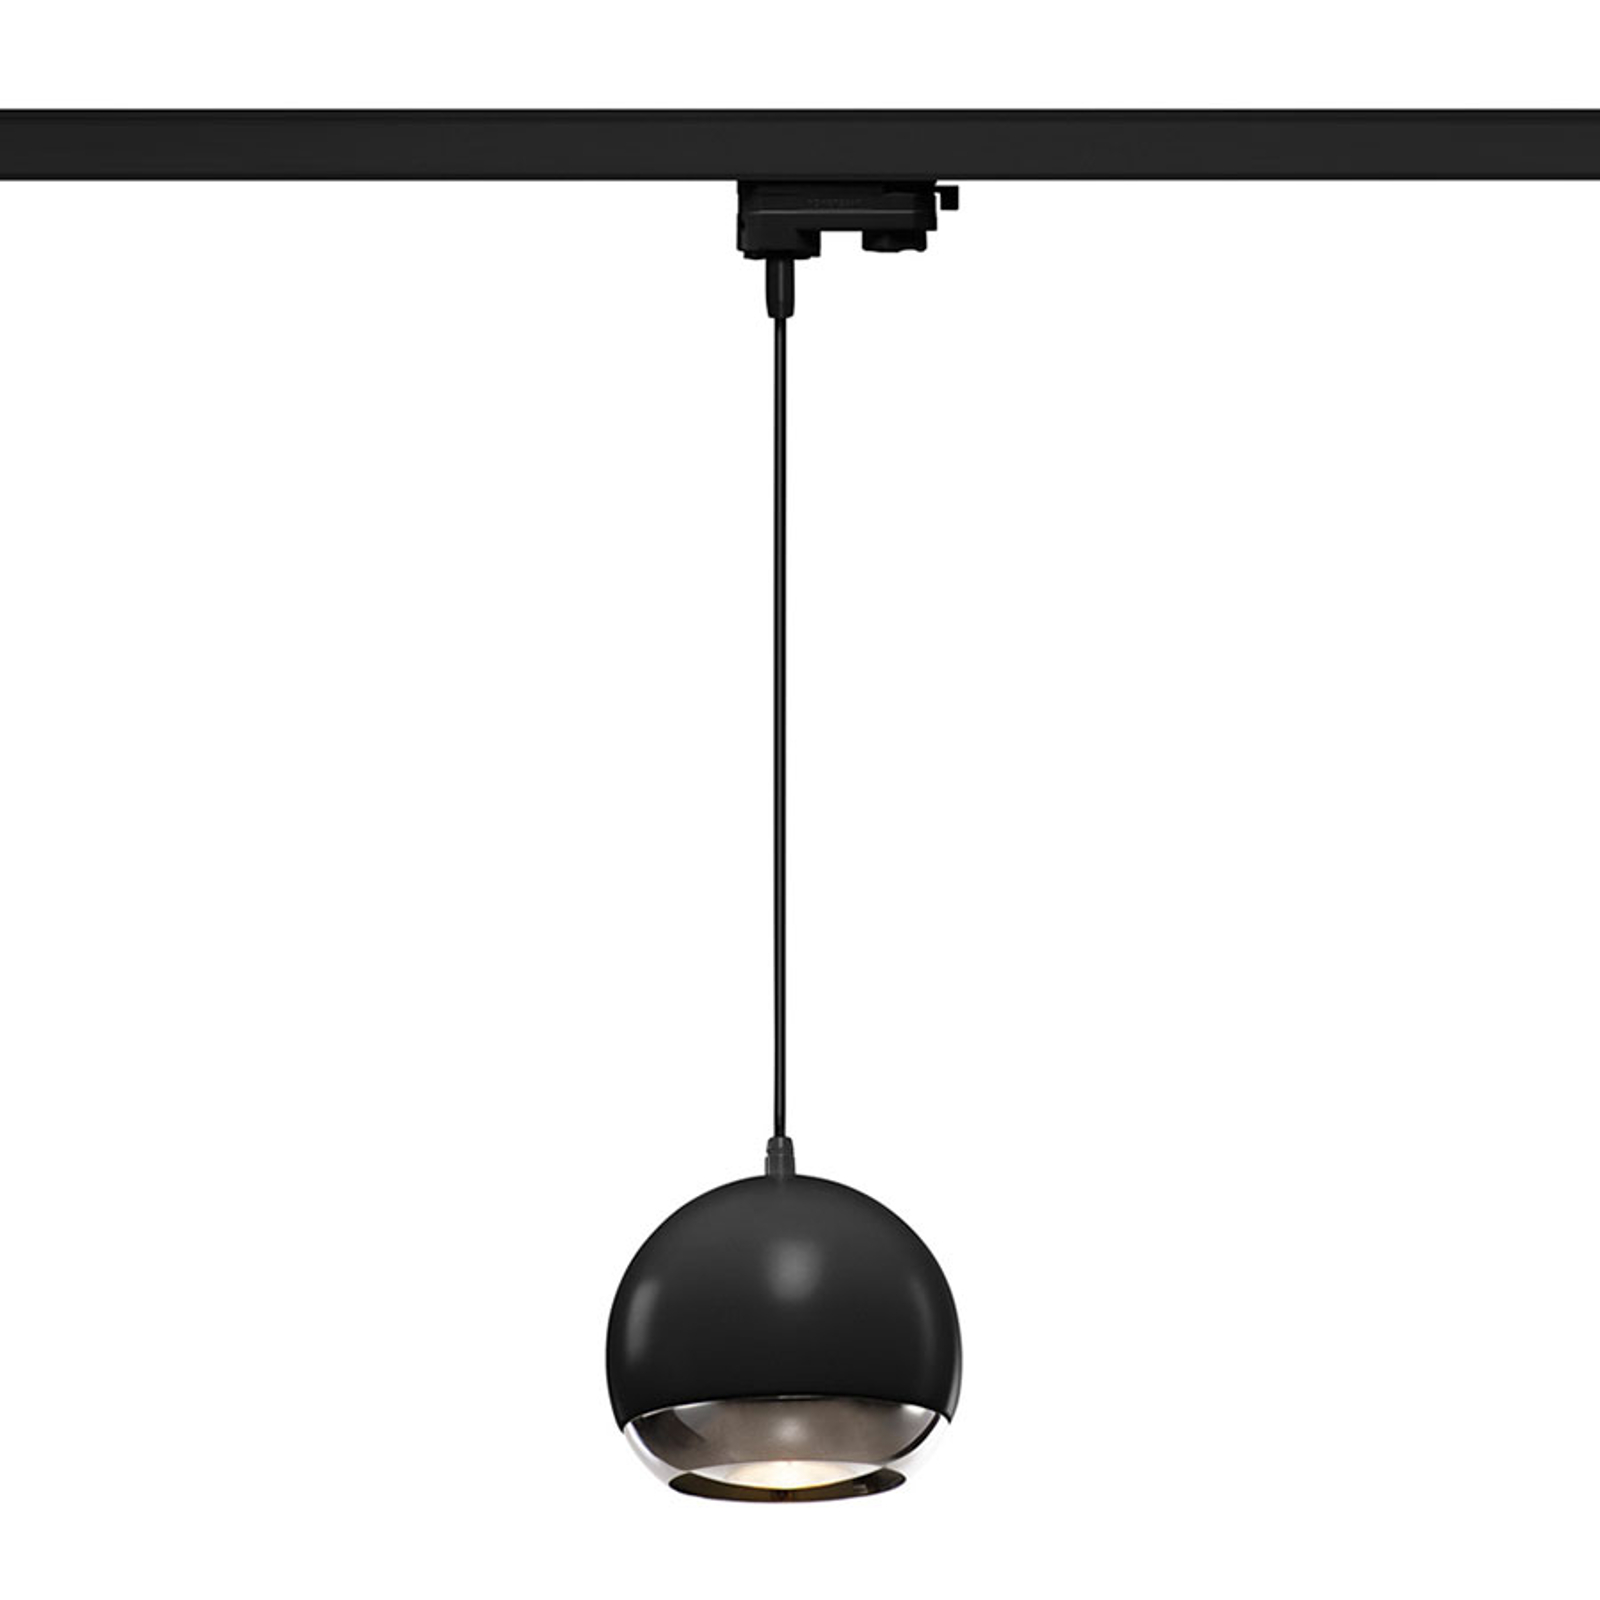 SLV Light Eye 150 hanglamp HV-rail, zwart